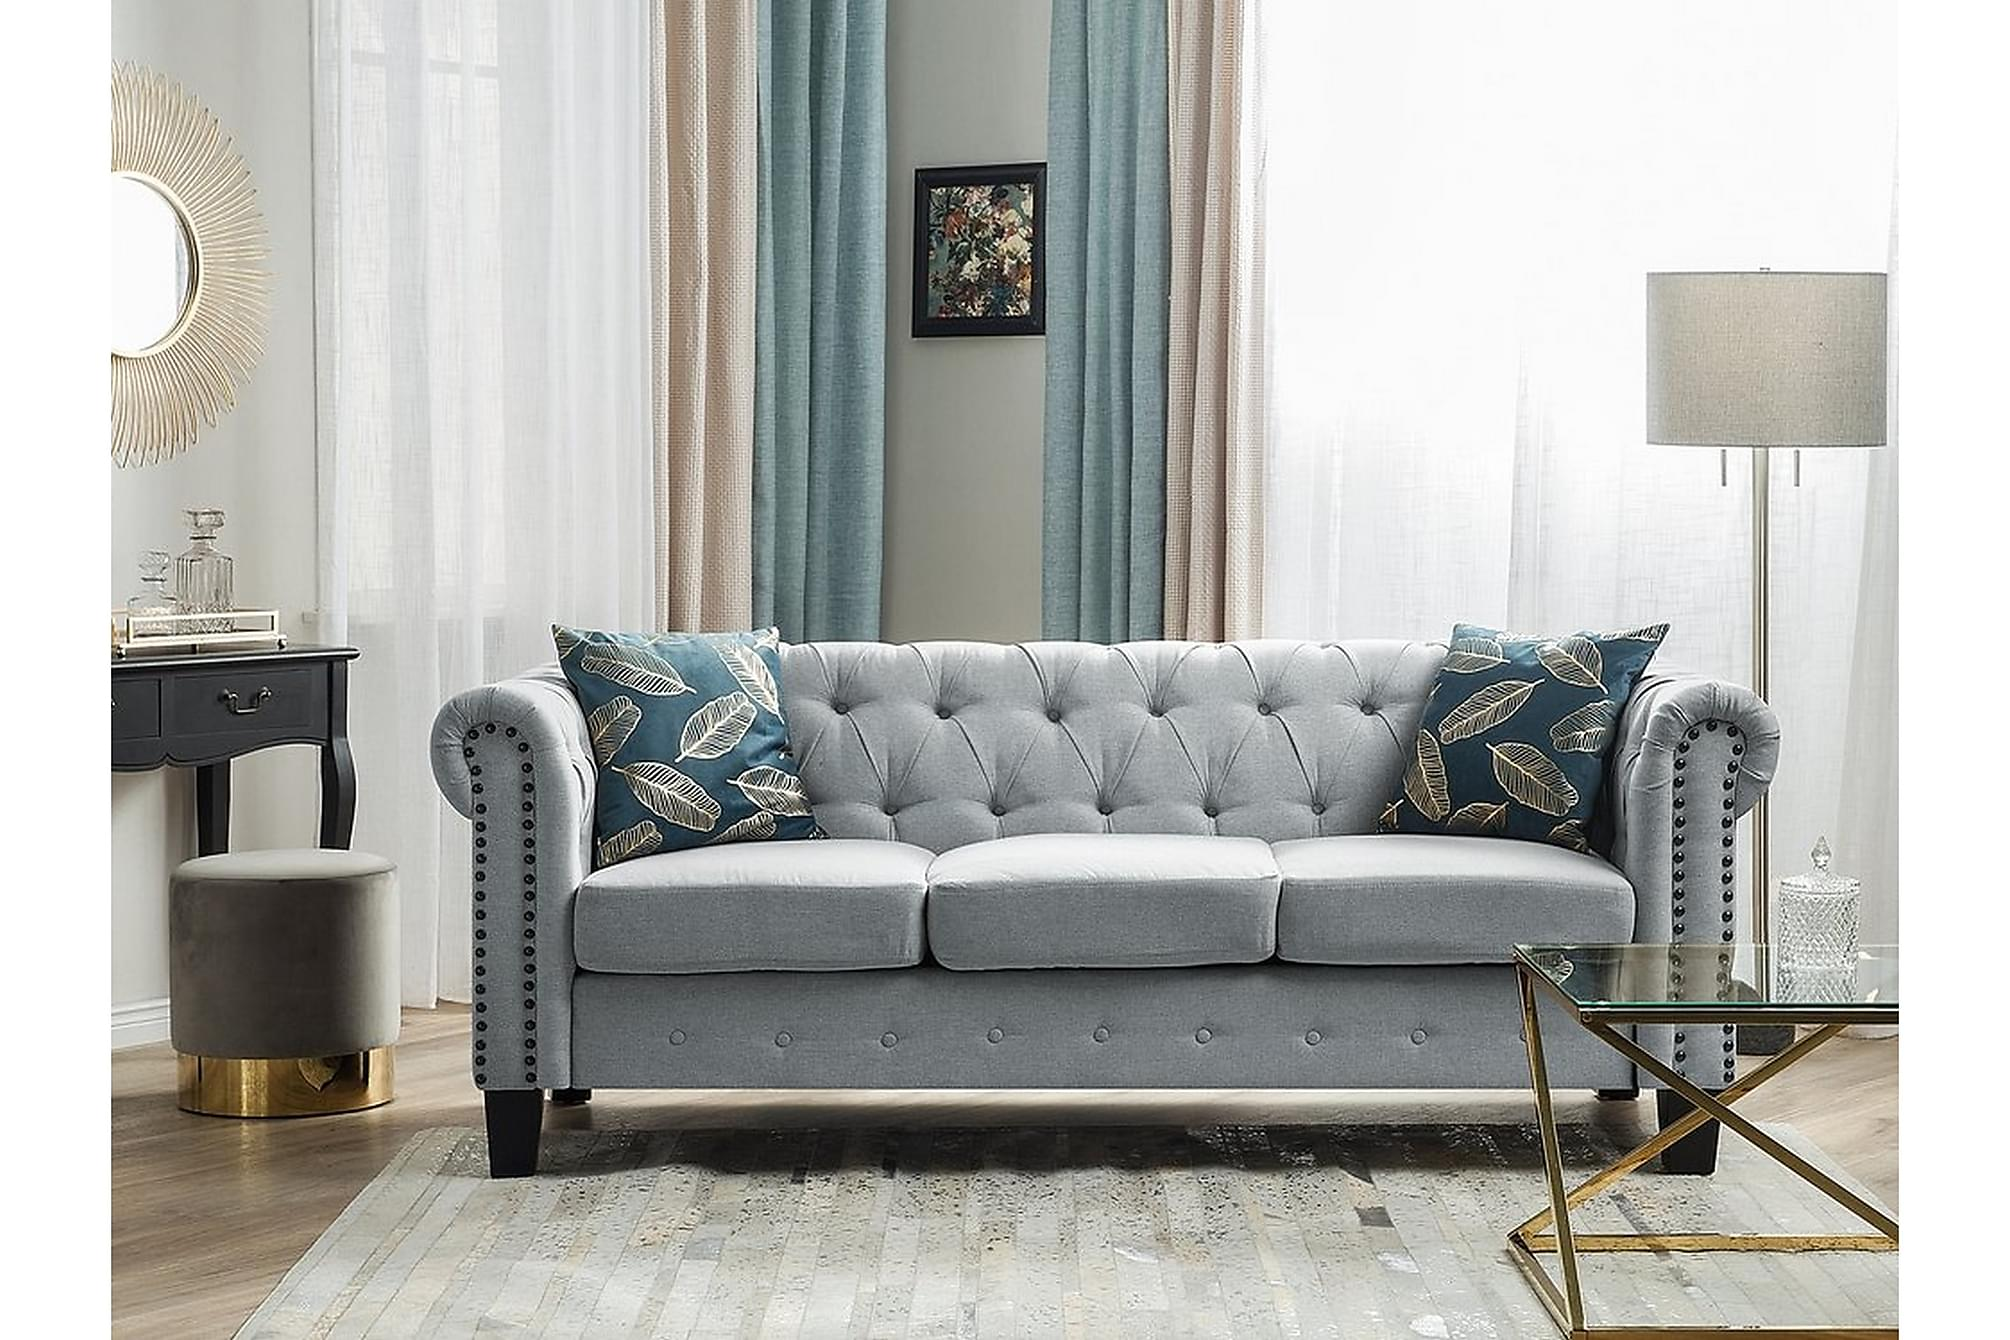 CHESTERFIELD Soffa 3 sits